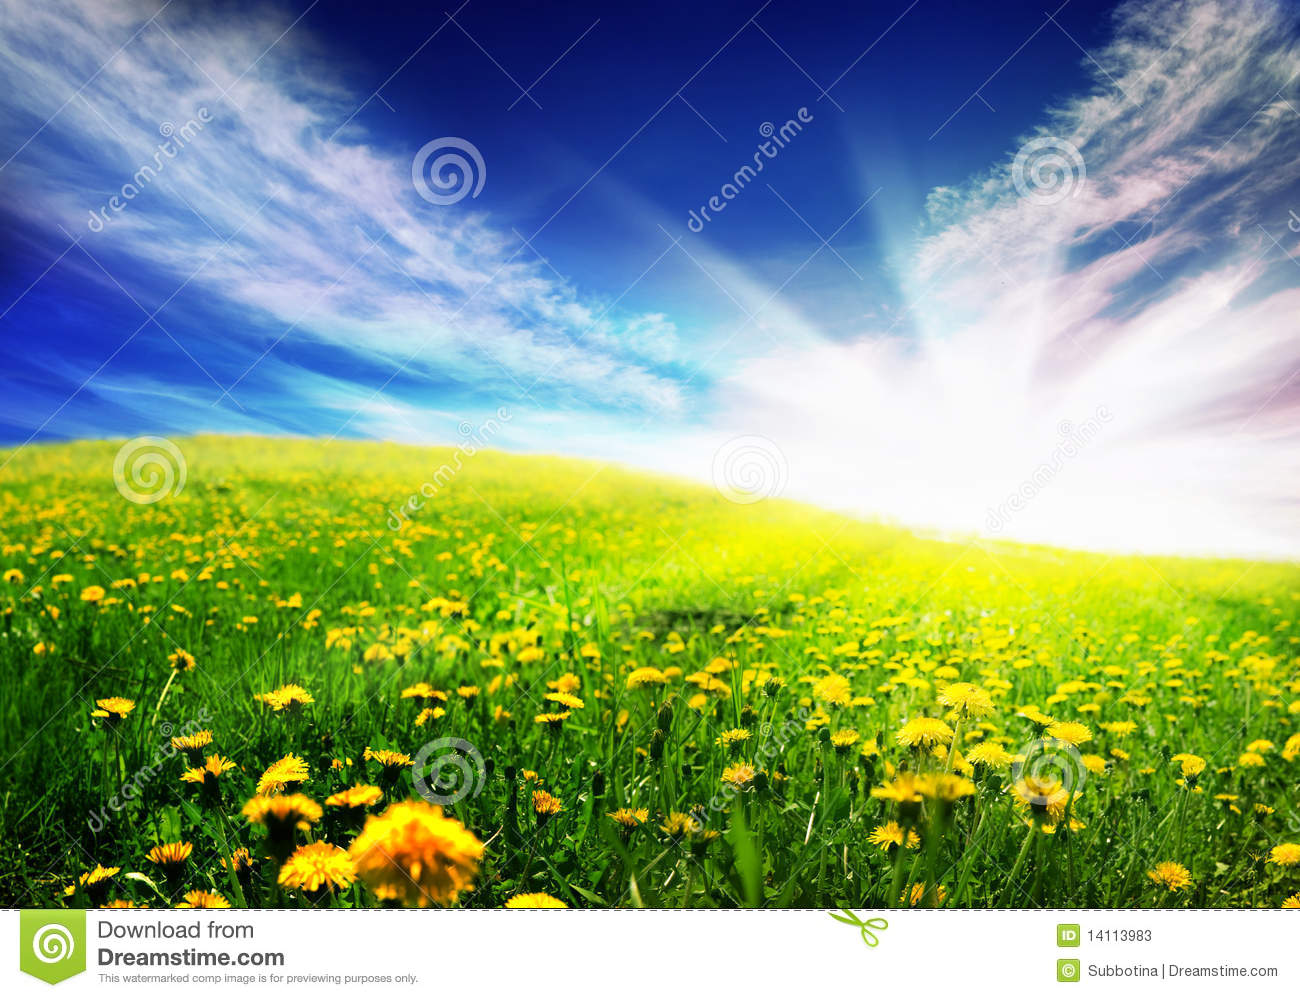 Spring Landscape Stock Photos - Image: 14113983